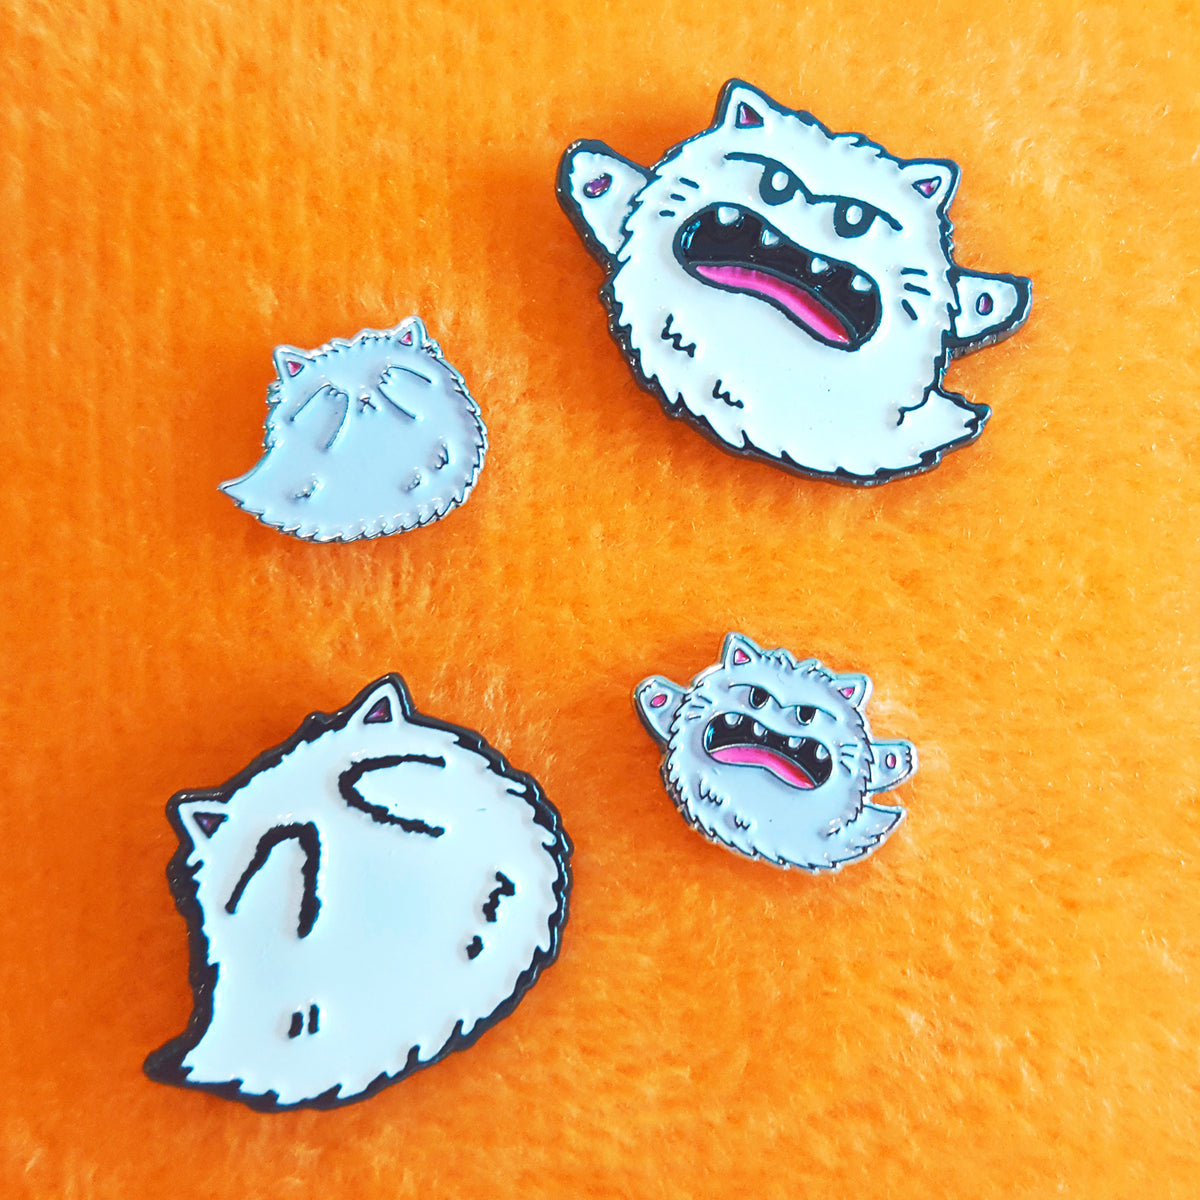 Kitty Boo Boo - Halloween ghost cat pins and earrings by My Cat Is People.